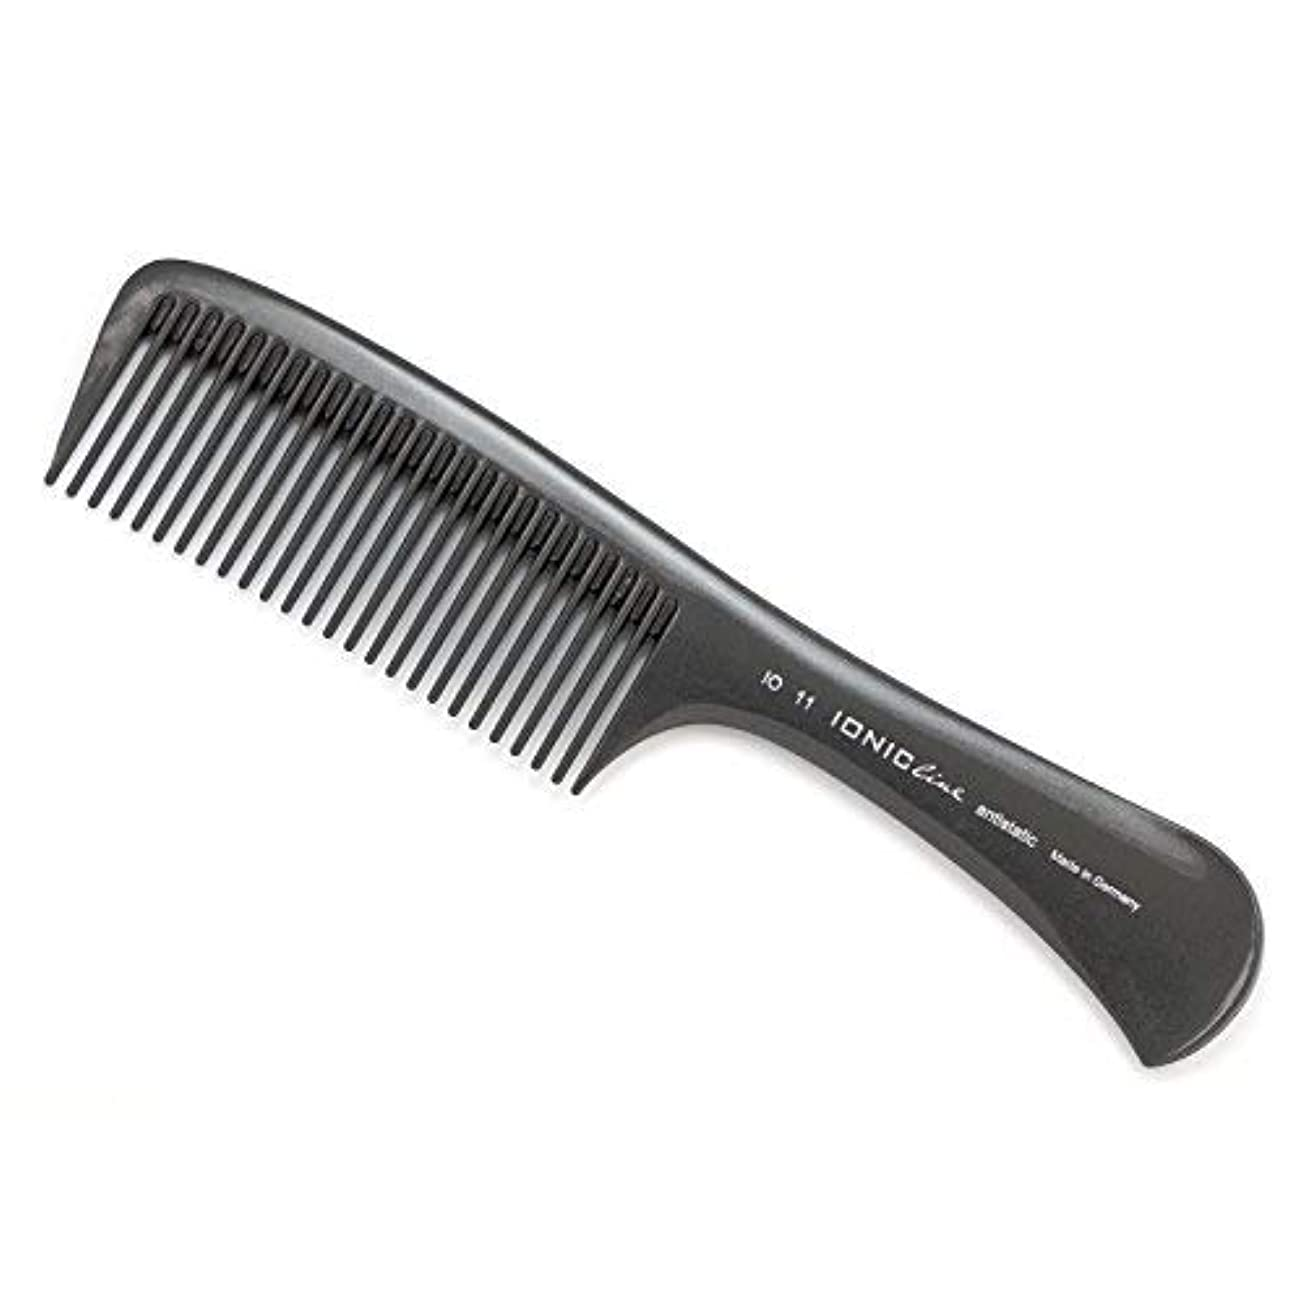 ネスト香りリーダーシップHercules S?gemann IONIC Line Handle Comb, Big Working Comb | Ionized Thermoplastic - Made in Germany [並行輸入品]